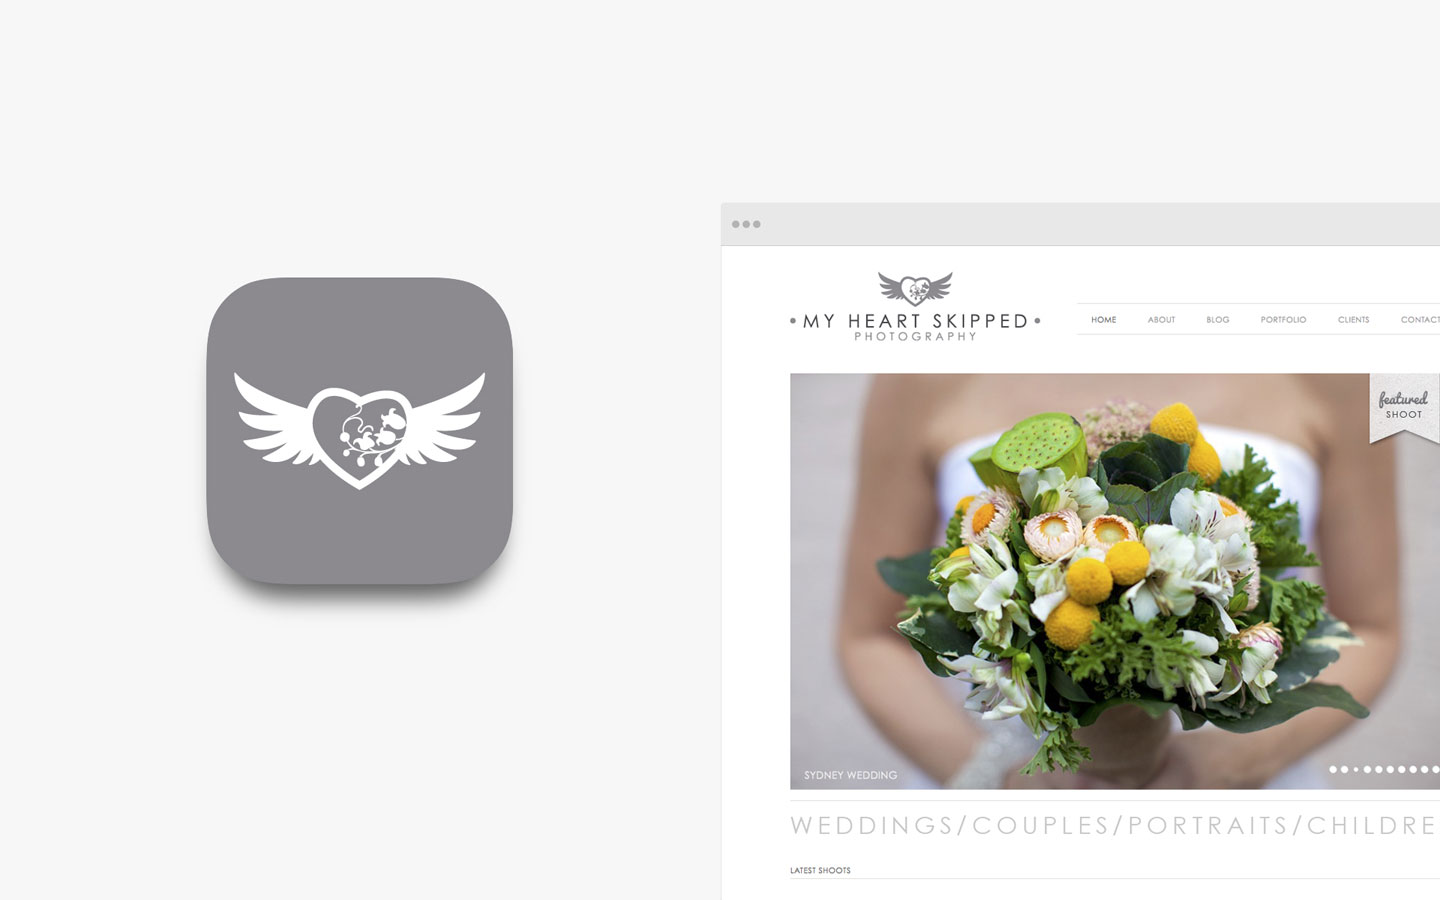 My Heart Skipped Logo Design in IOS Icon and Website